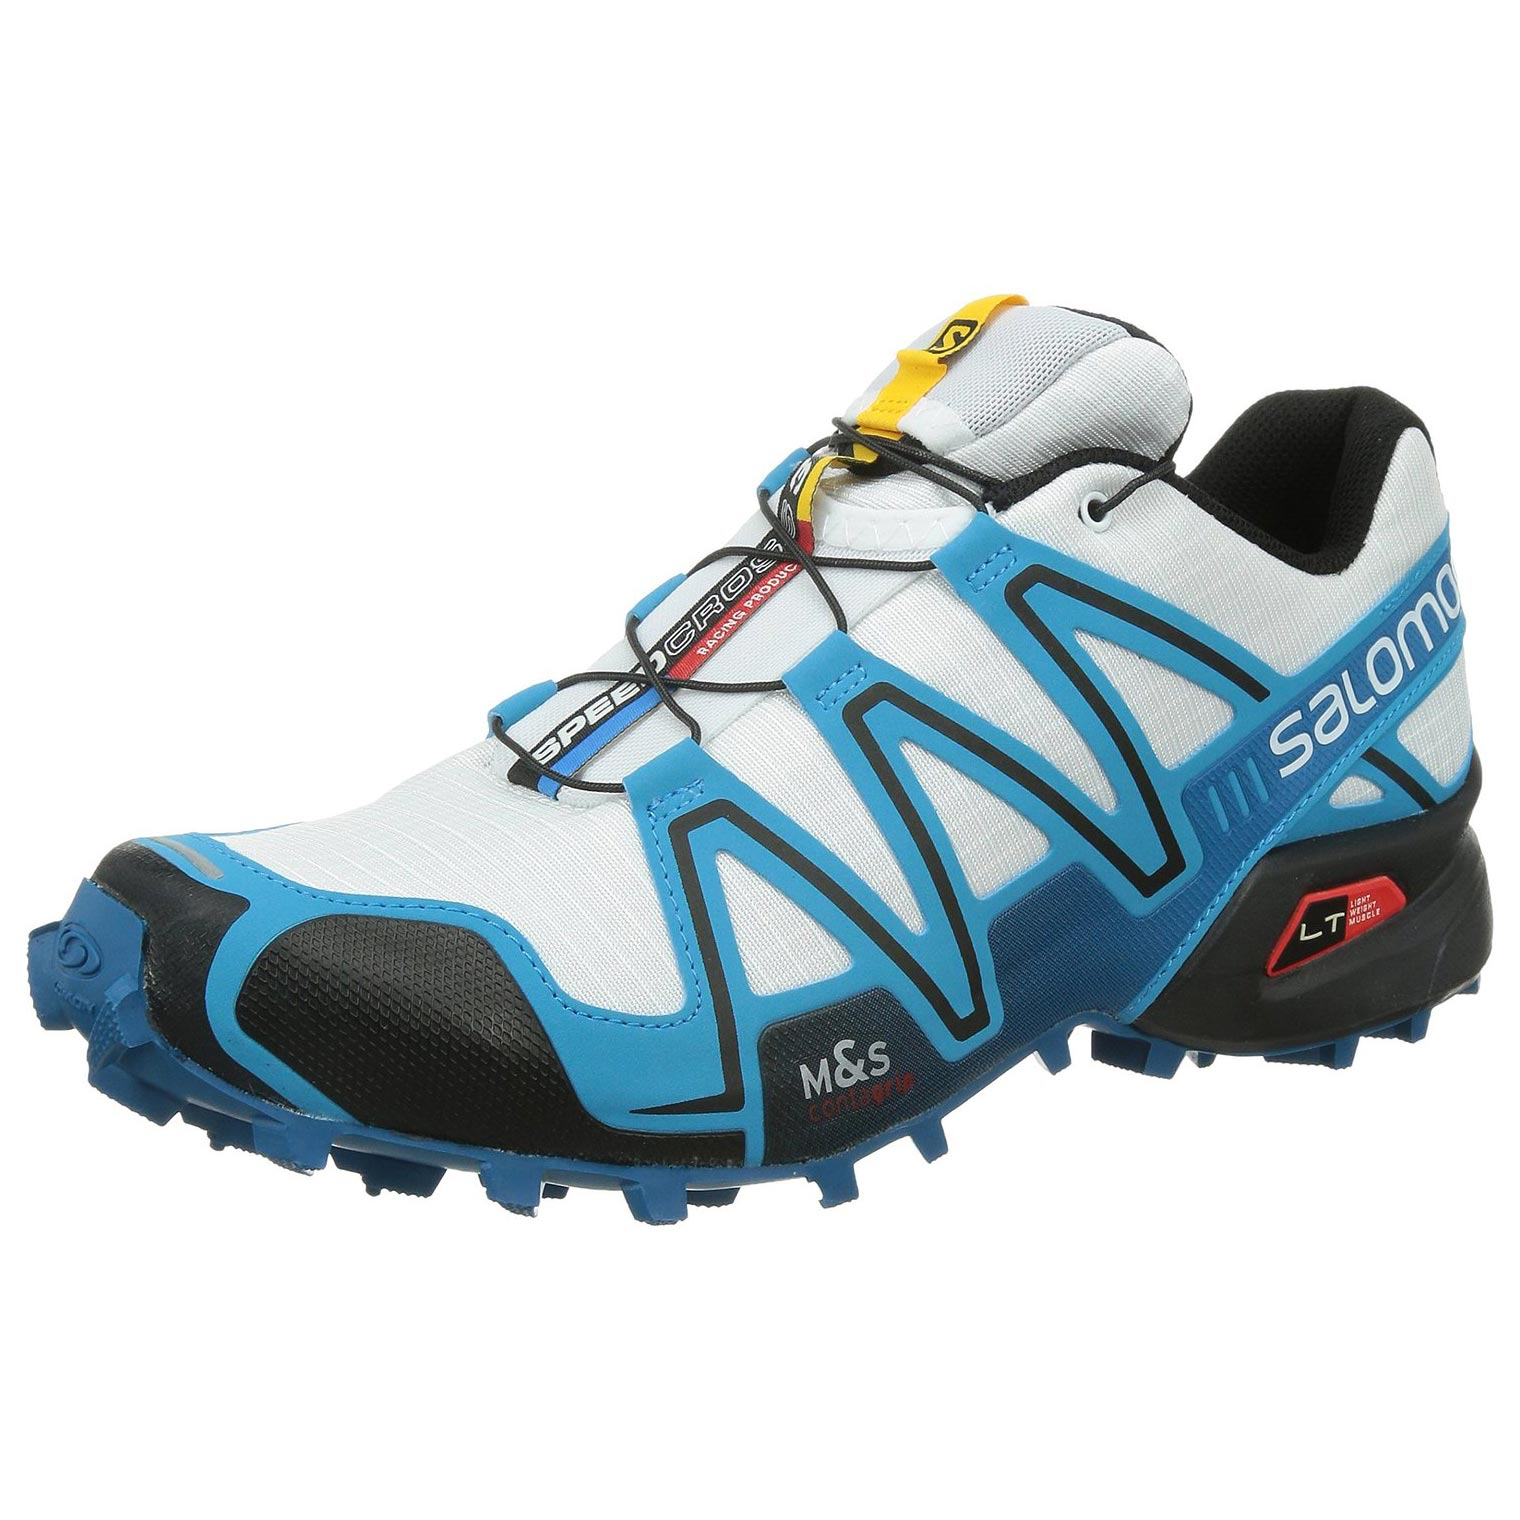 Zapatilla Salomon Speedcross 3 Blanco/Azul/Negro